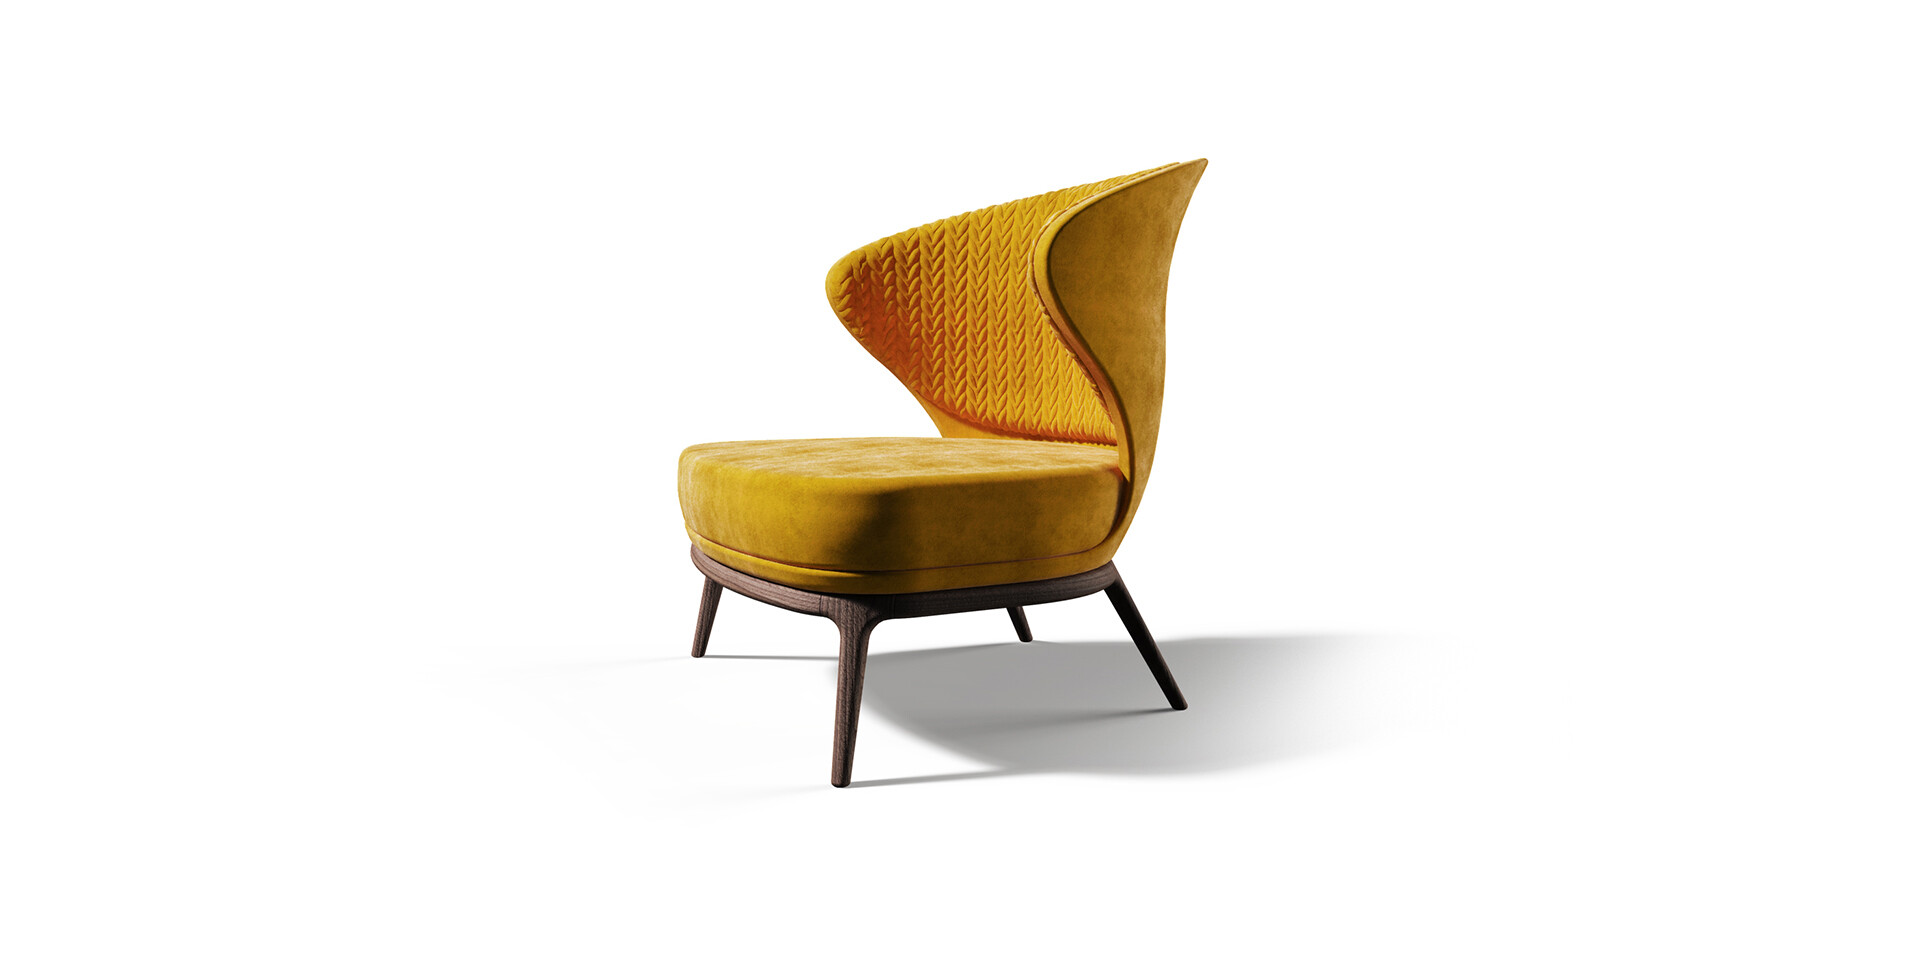 MOUSGOUM ARMCHAIR side view ALMA DE LUCE